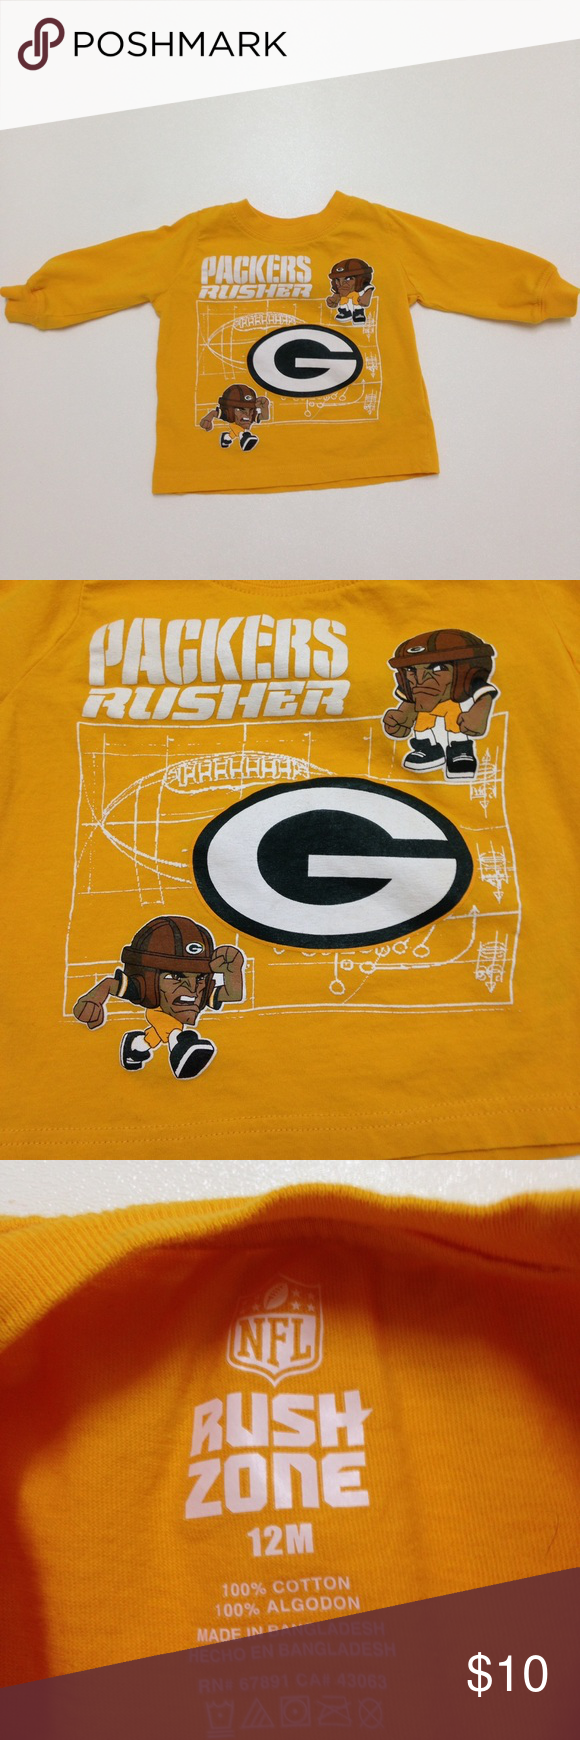 """NFL Green Bay Packers Long Sleeve 12 Months NFL Green Bay Packers Long Sleeve Shirt 12 Months. """"Packers Rusher""""printed. Good Condition. NFL Shirts & Tops Tees - Short Sleeve"""